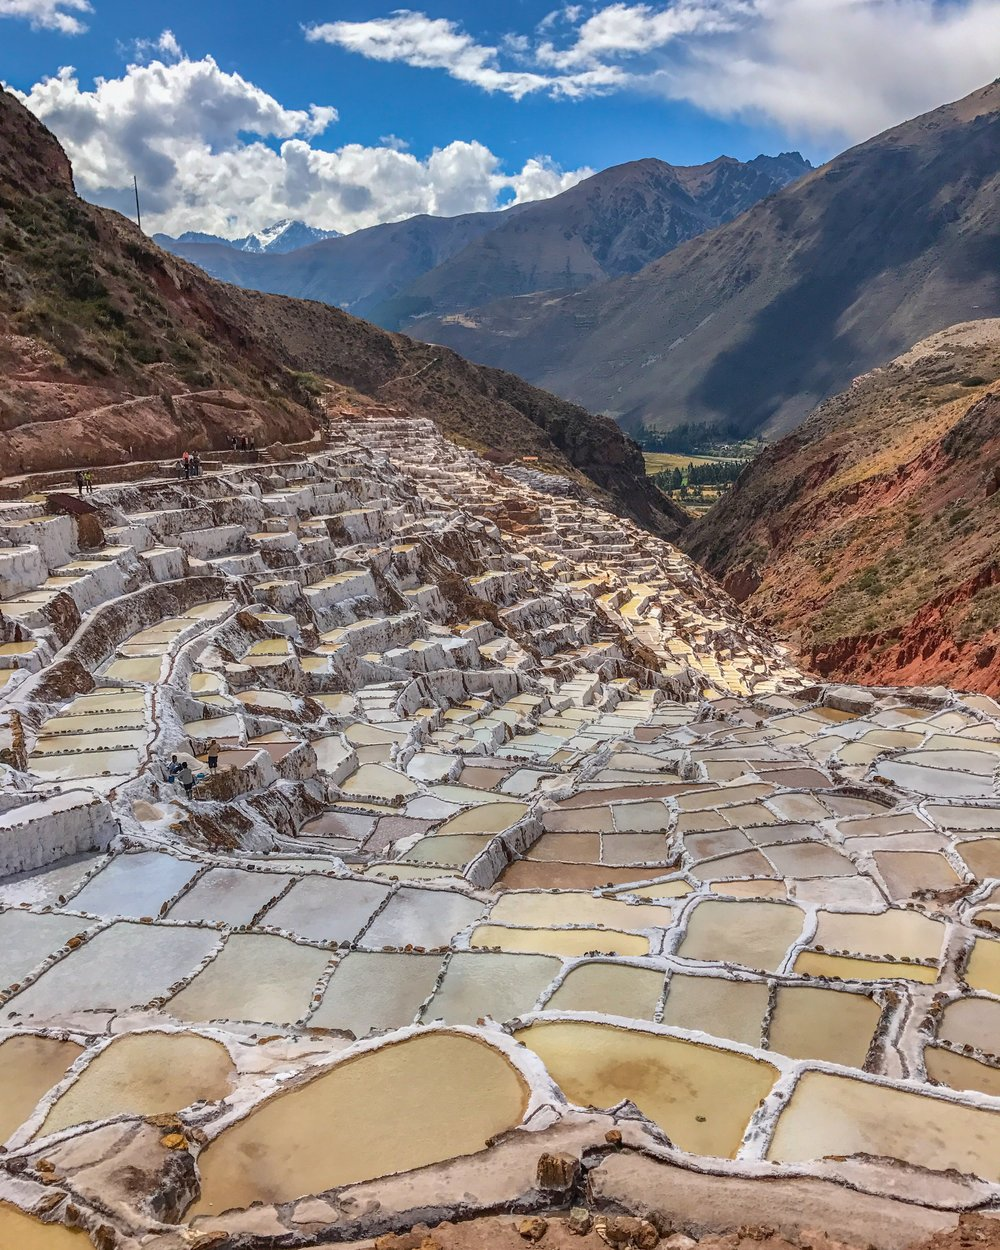 Maras salt mines near Cusco